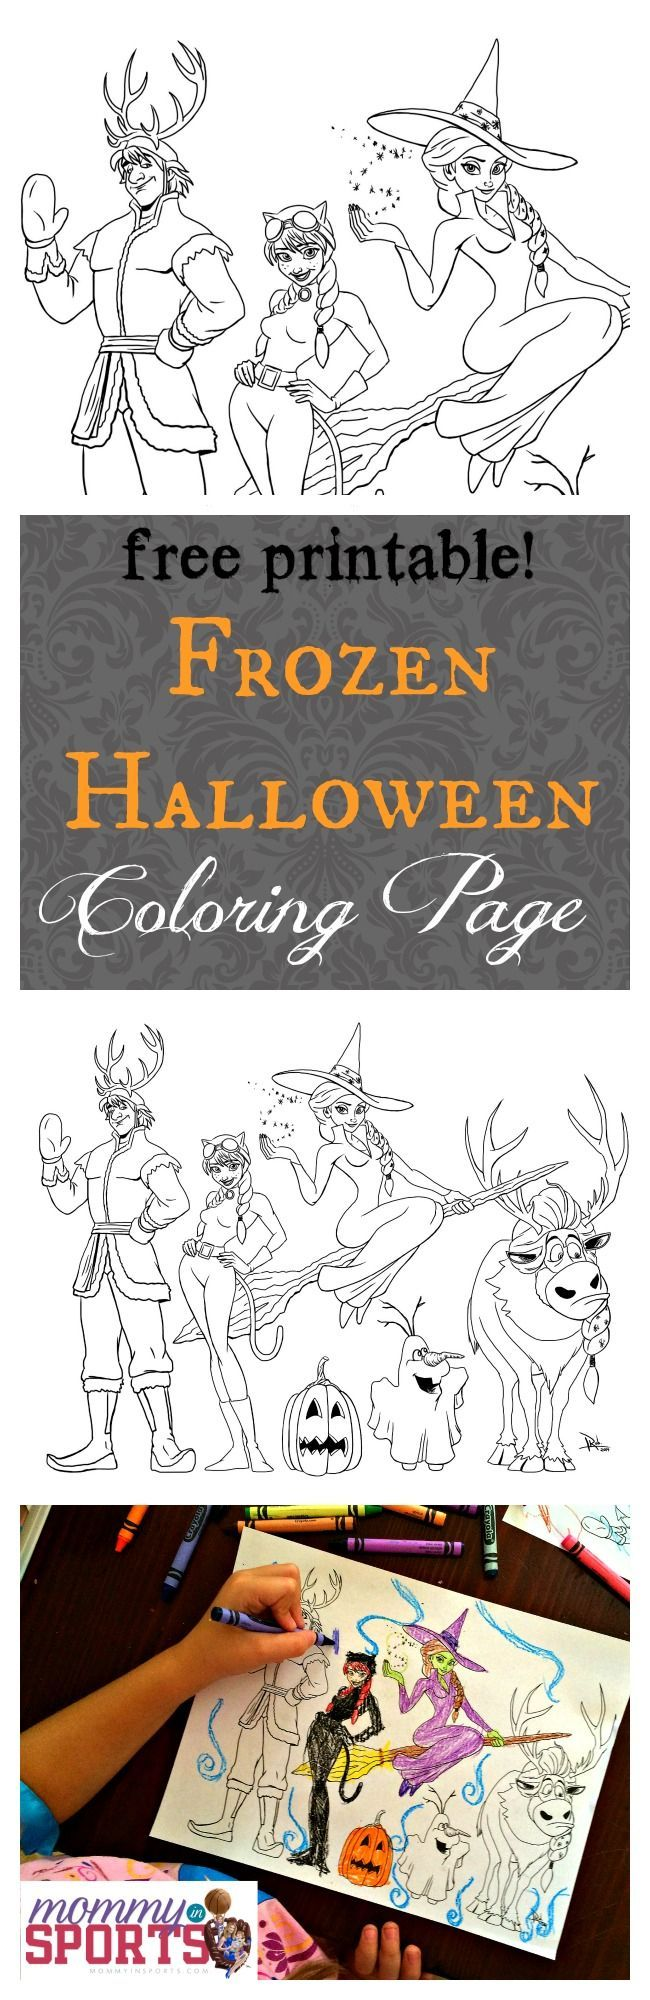 a FREE printable! Frozen Halloween Coloring Page. Exclusively at http://mommyinsports.com! #FROZEN #Halloween #freeprintable